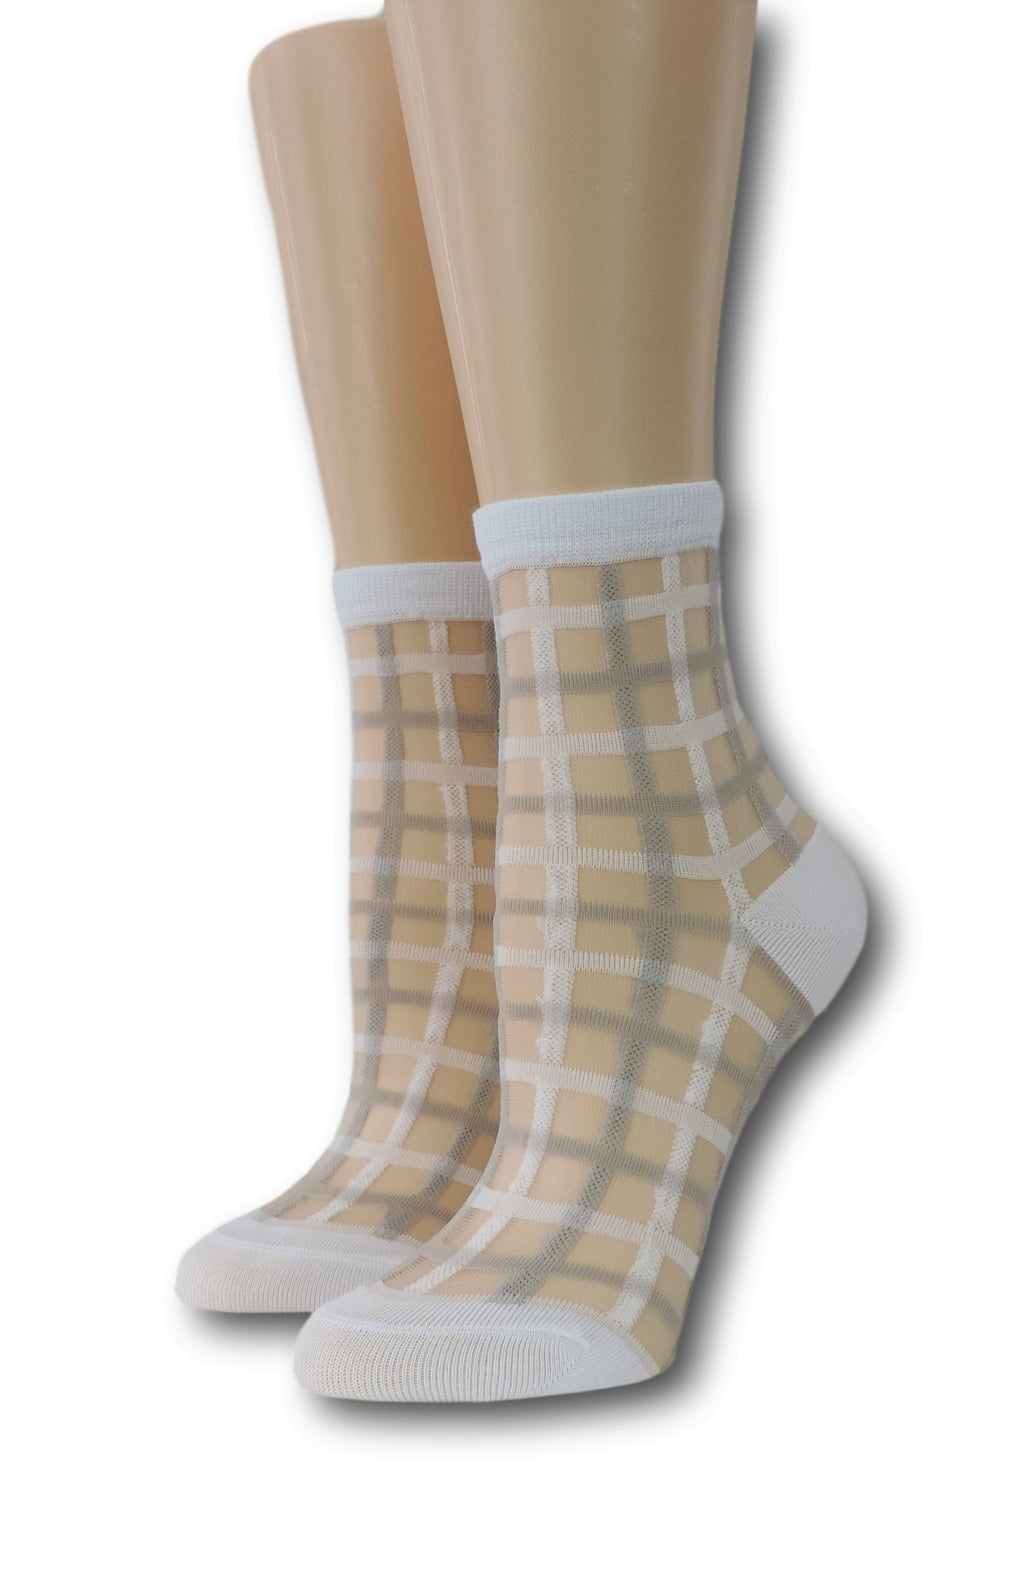 White Vintage Sheer Socks